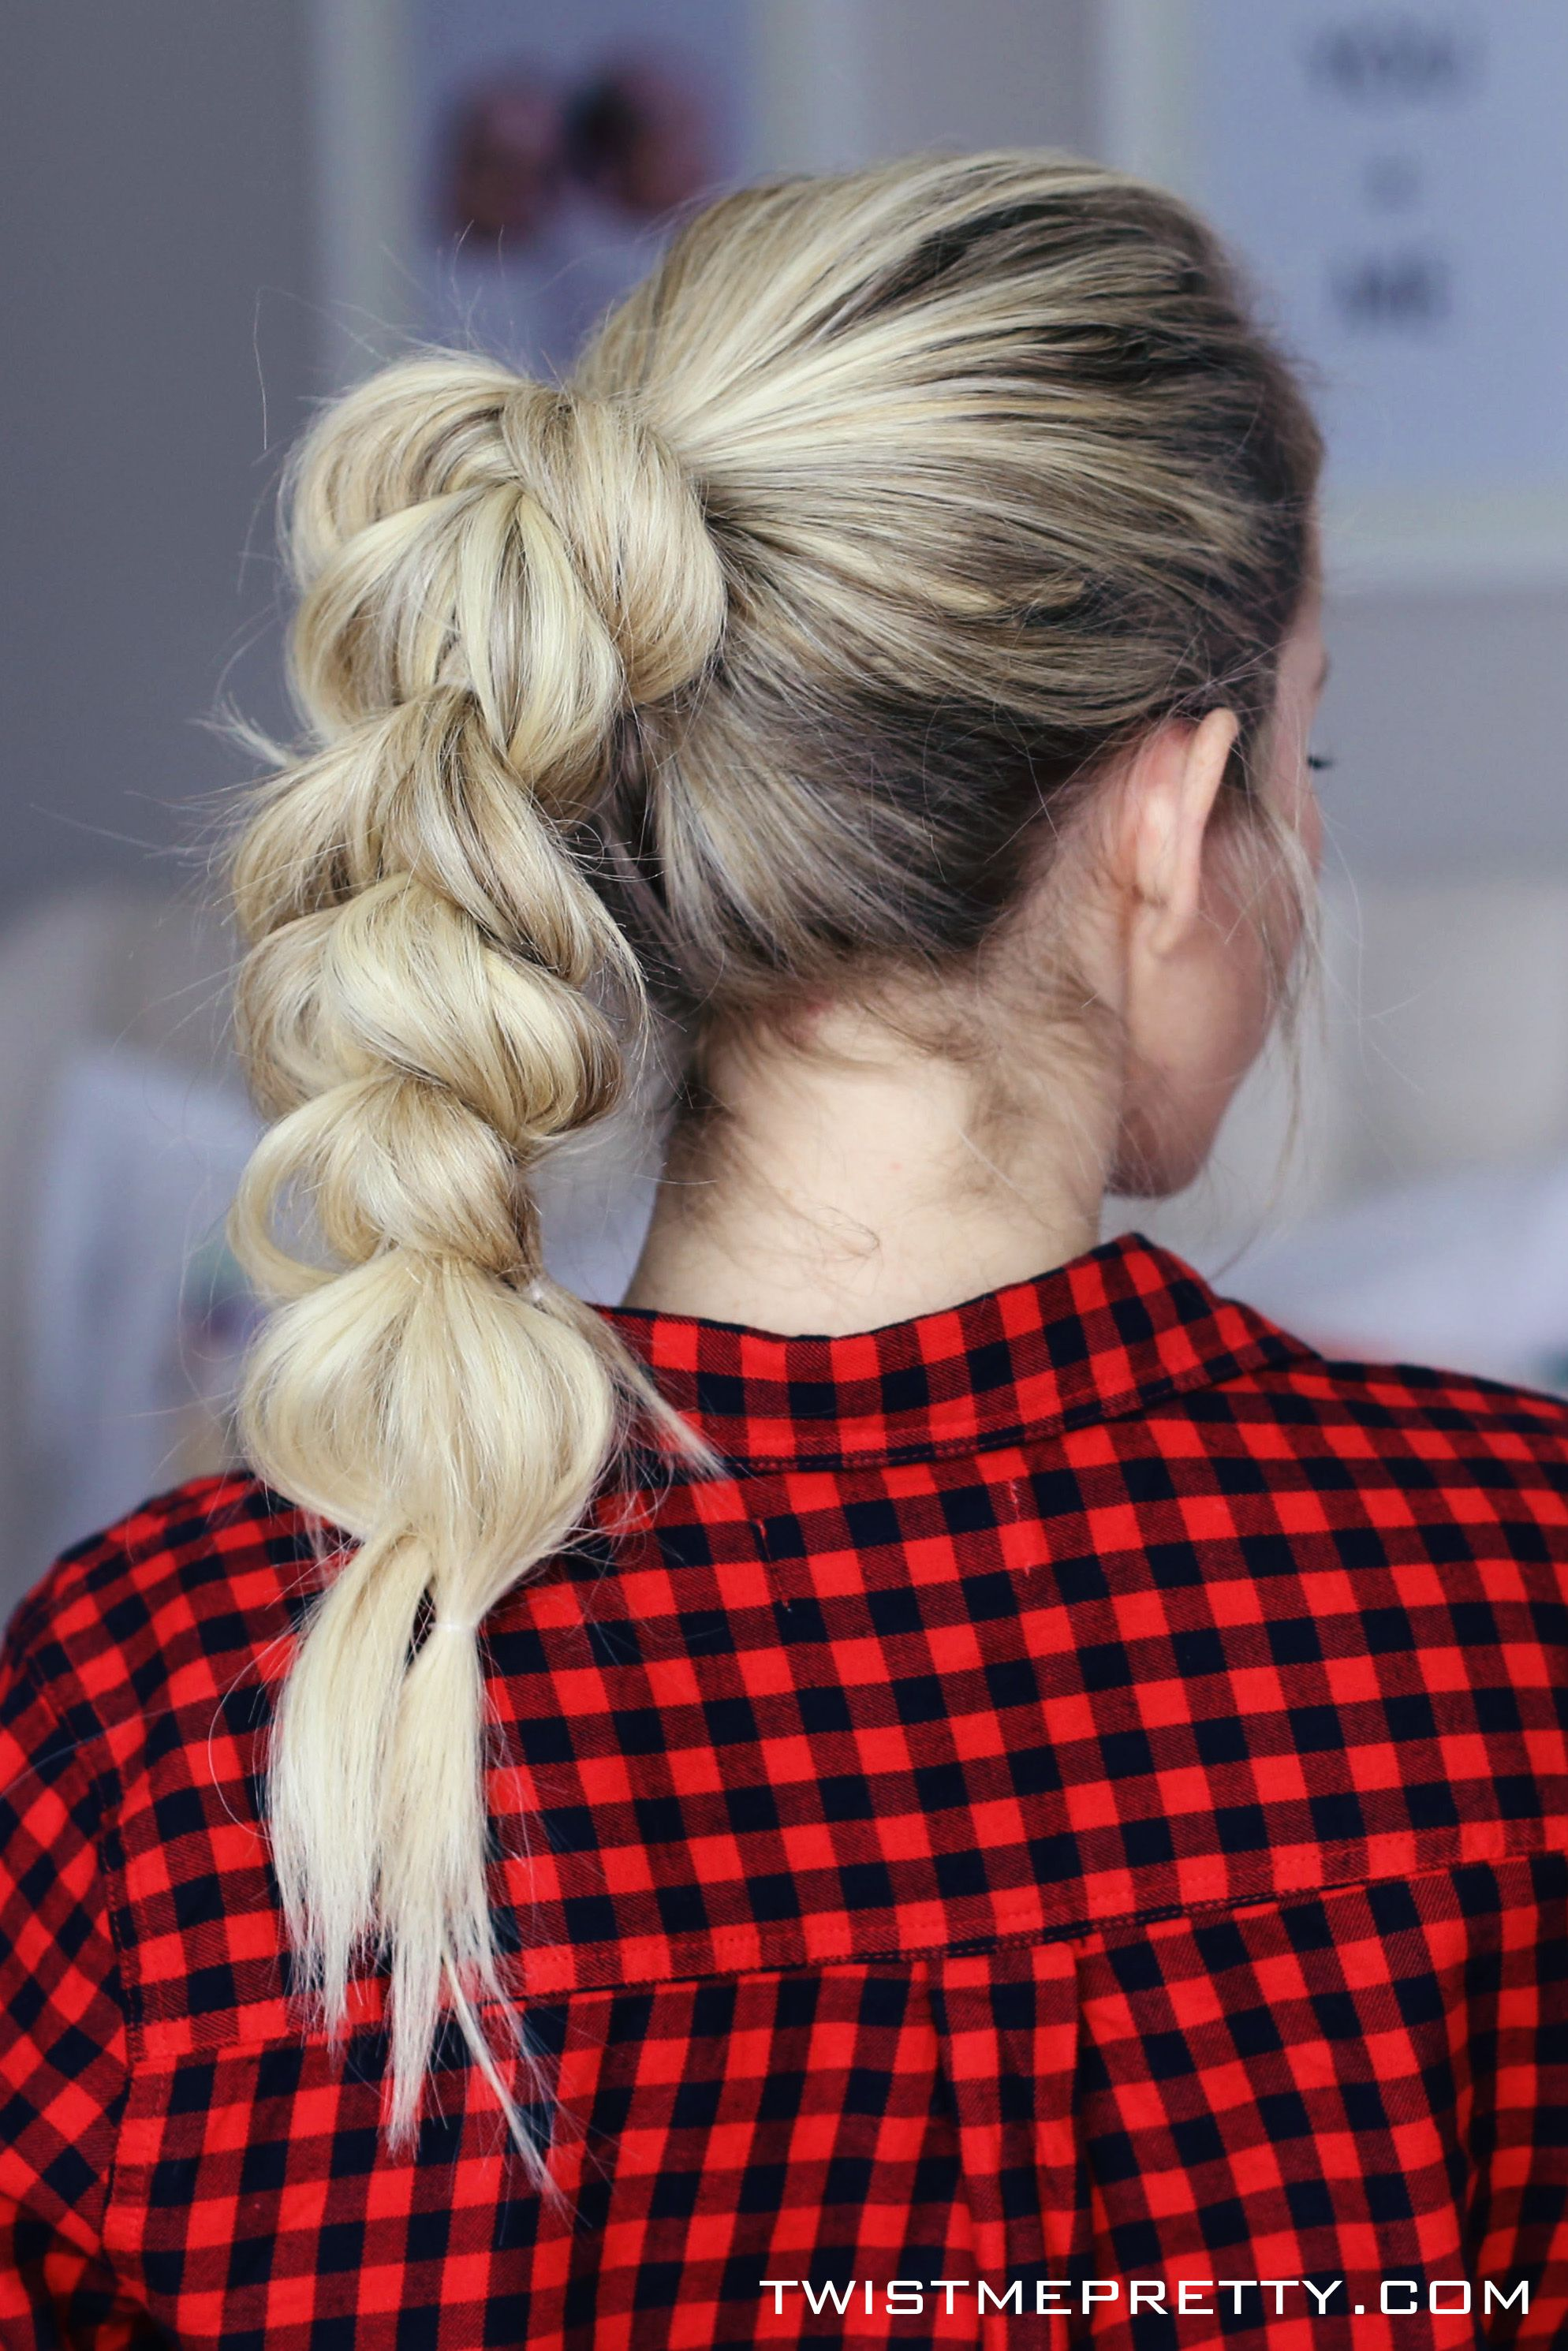 Ium dying over this pullthrough braid her tutorial is so easy